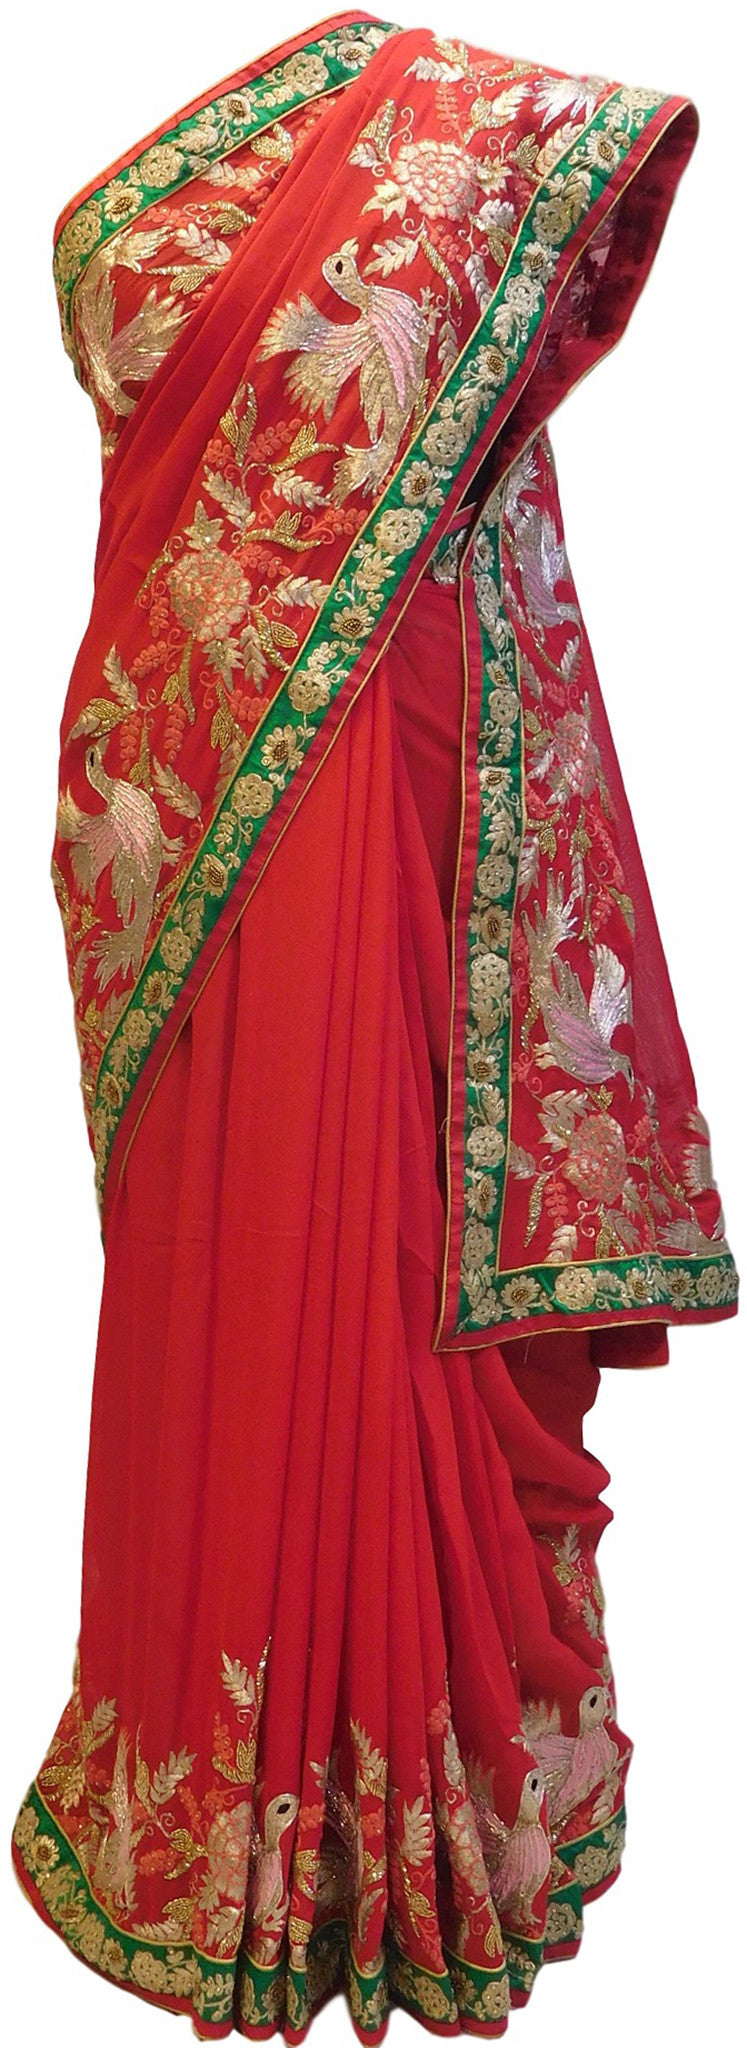 Red Designer Georgette Saree With Stone, Gotawork Border